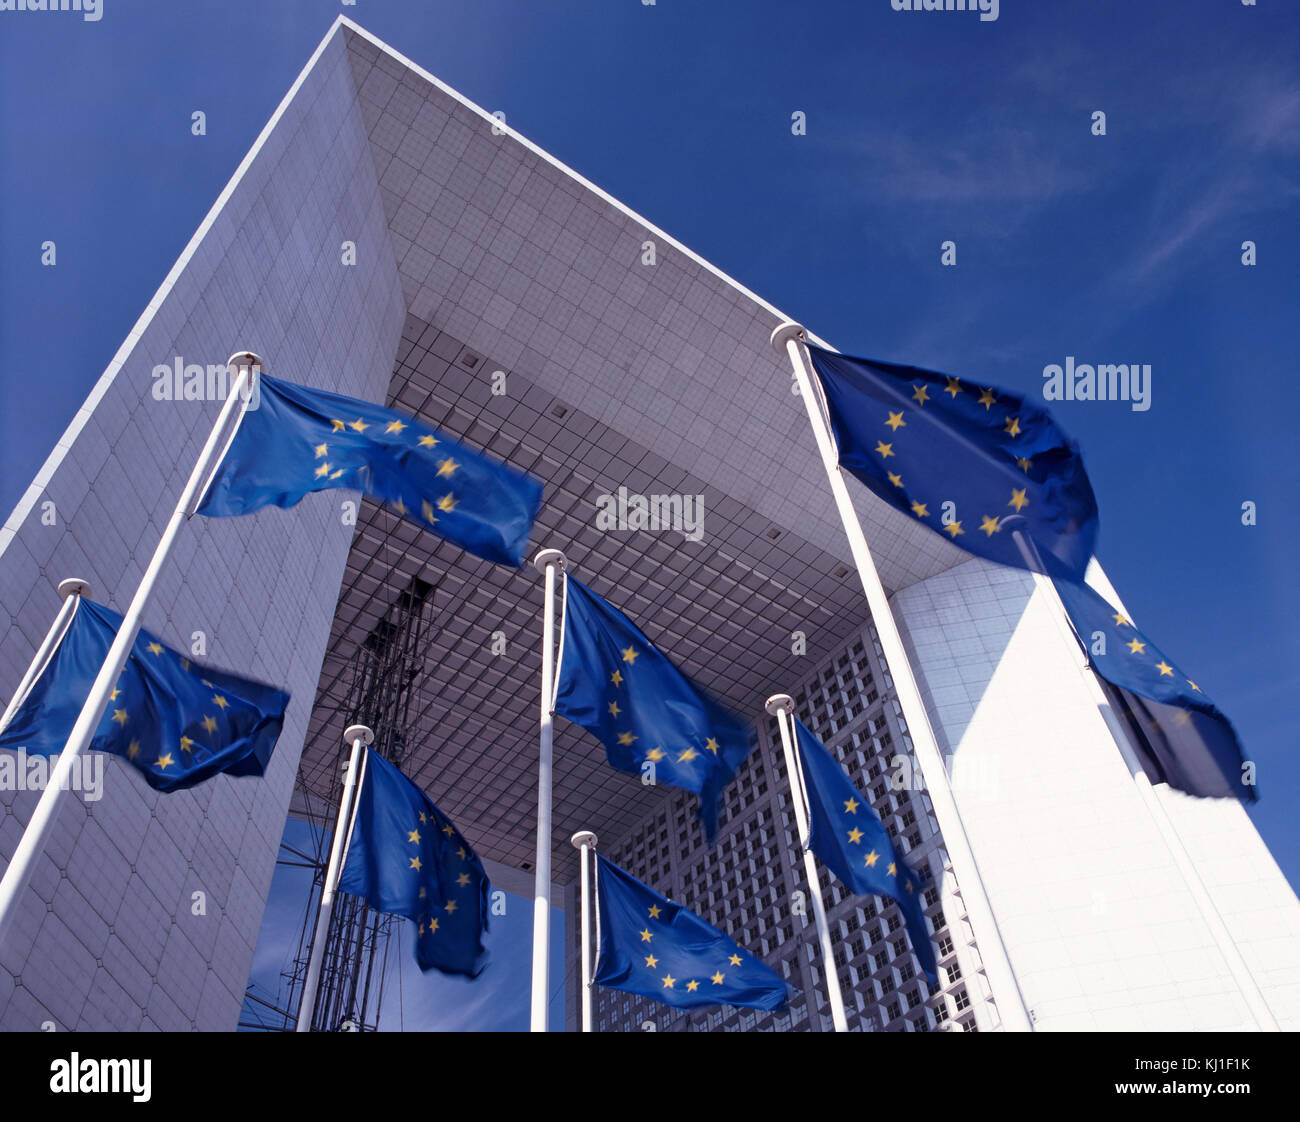 European Union Flags in front of the Grand Arch at La Defense, Paris, France - Stock Image